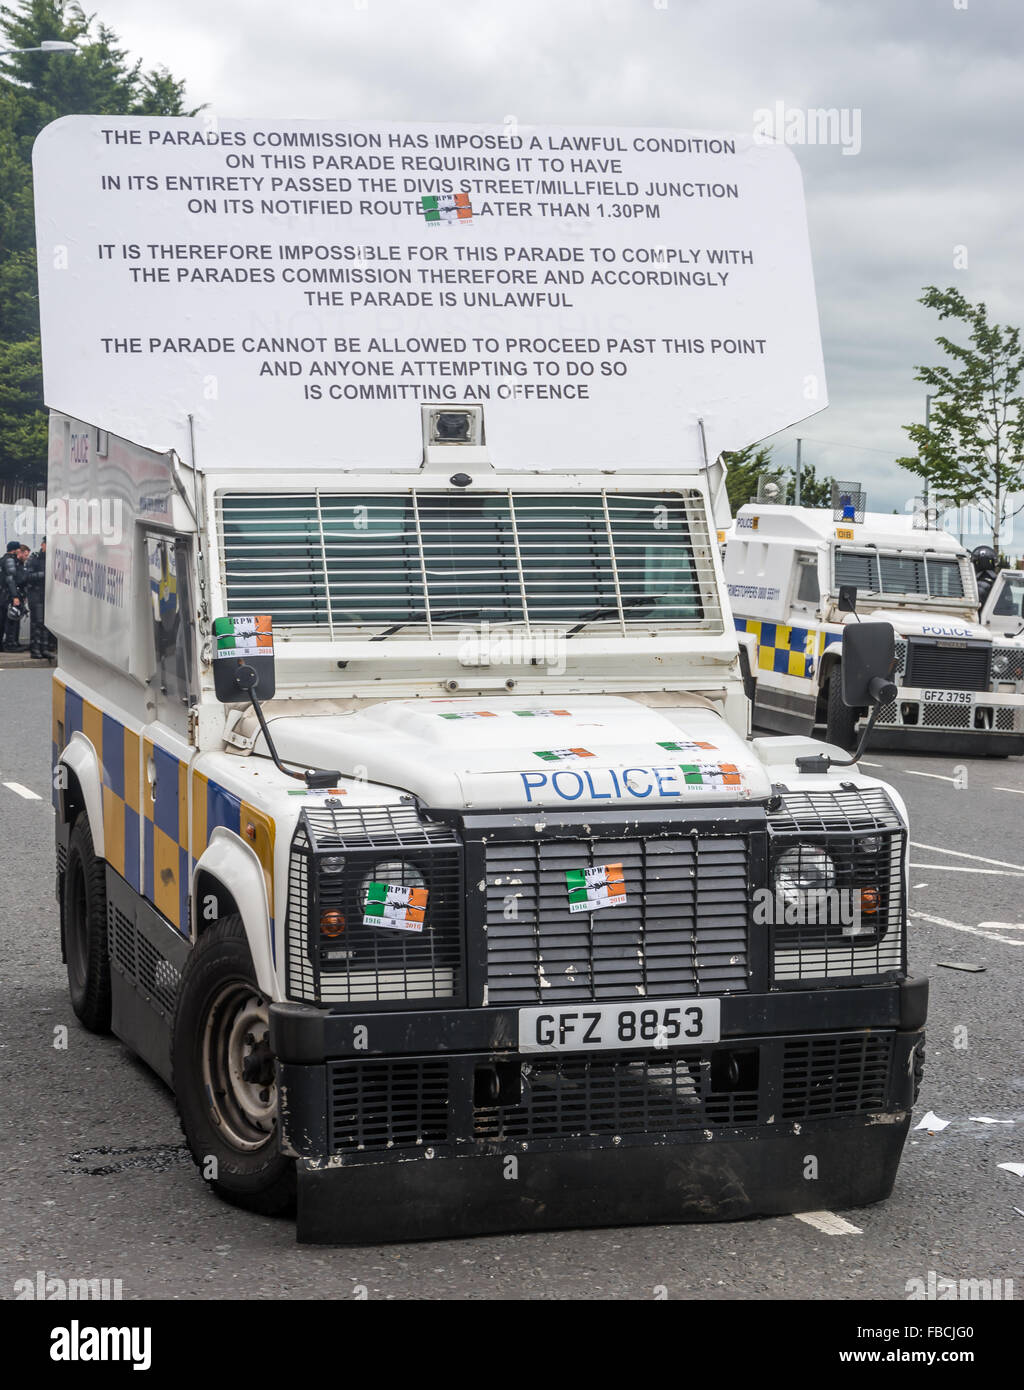 PSNI land rover displaying a Parades Commission parade ruling in Belfast. The land rover had stickers placed on - Stock Image